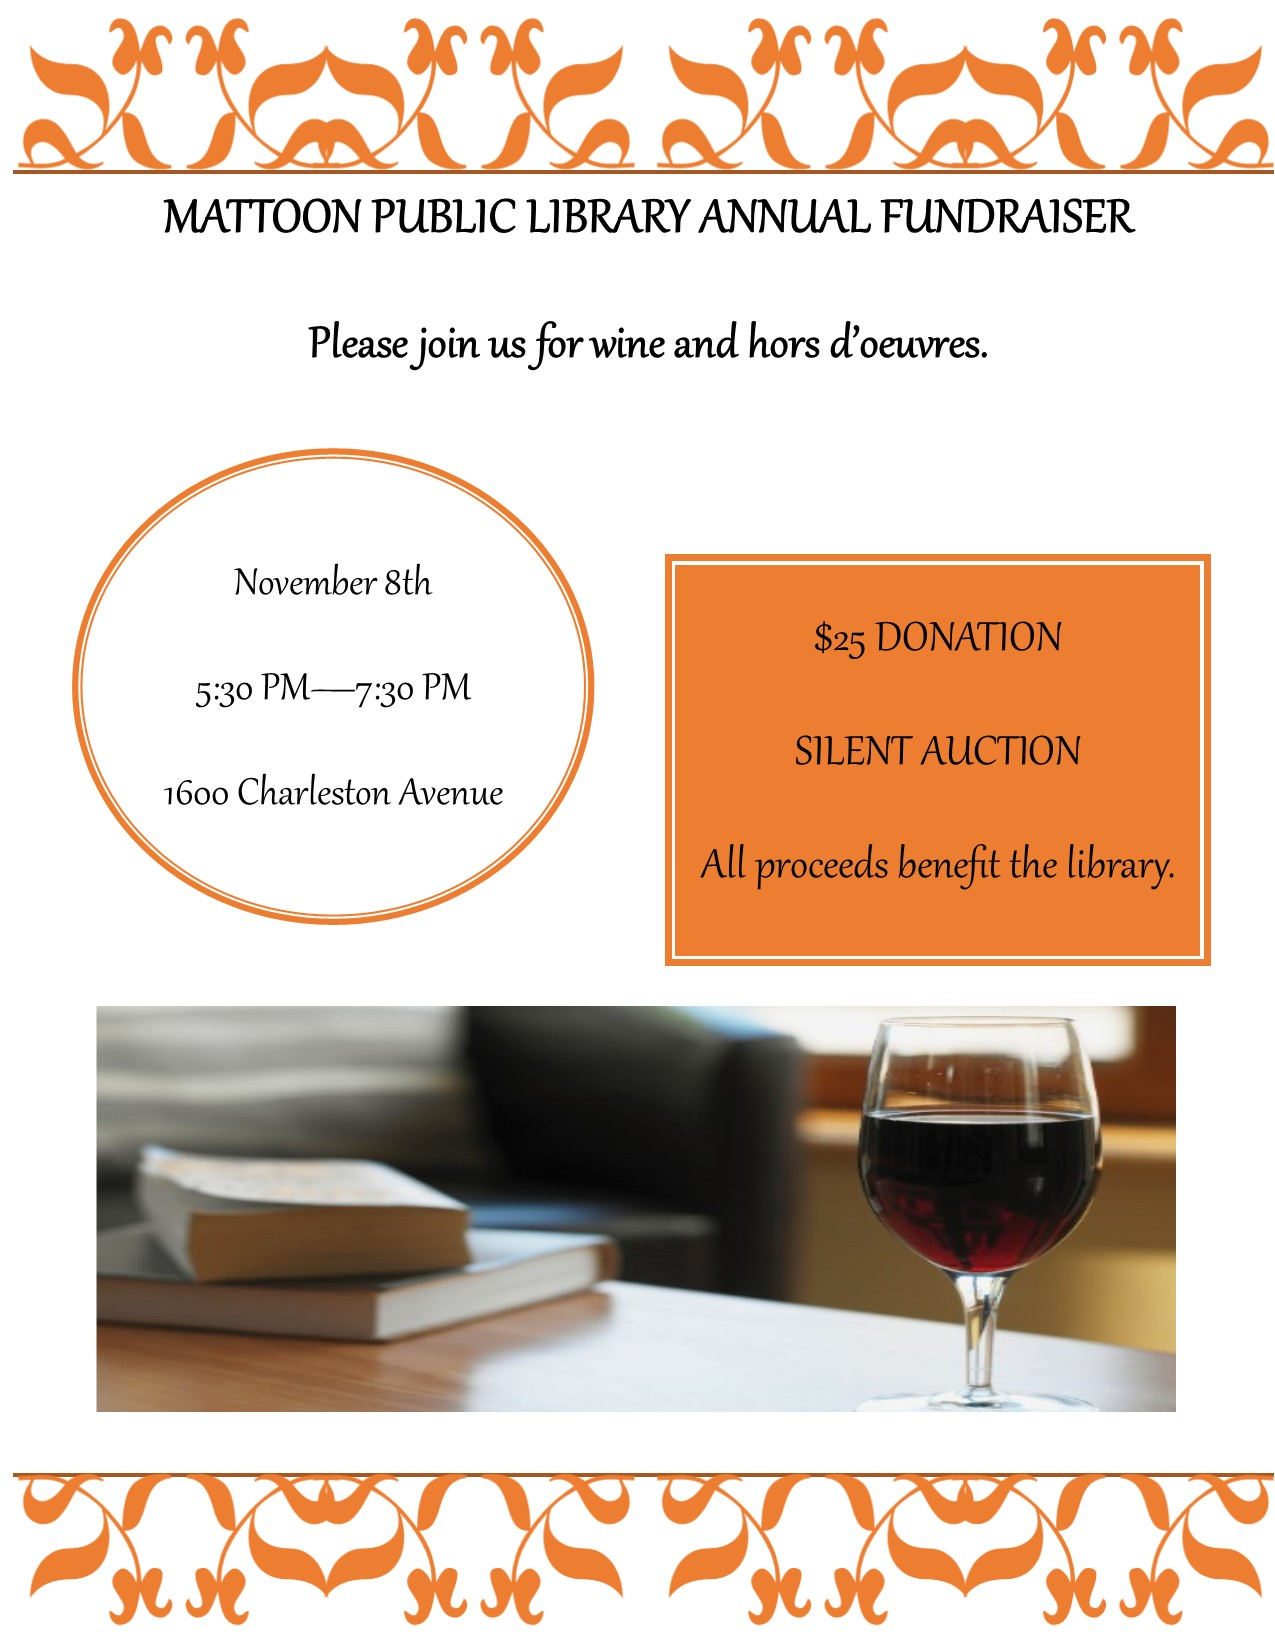 Mattoon Public Library Annual Fundraiser @ Mattoon Public Library | Mattoon | Illinois | United States